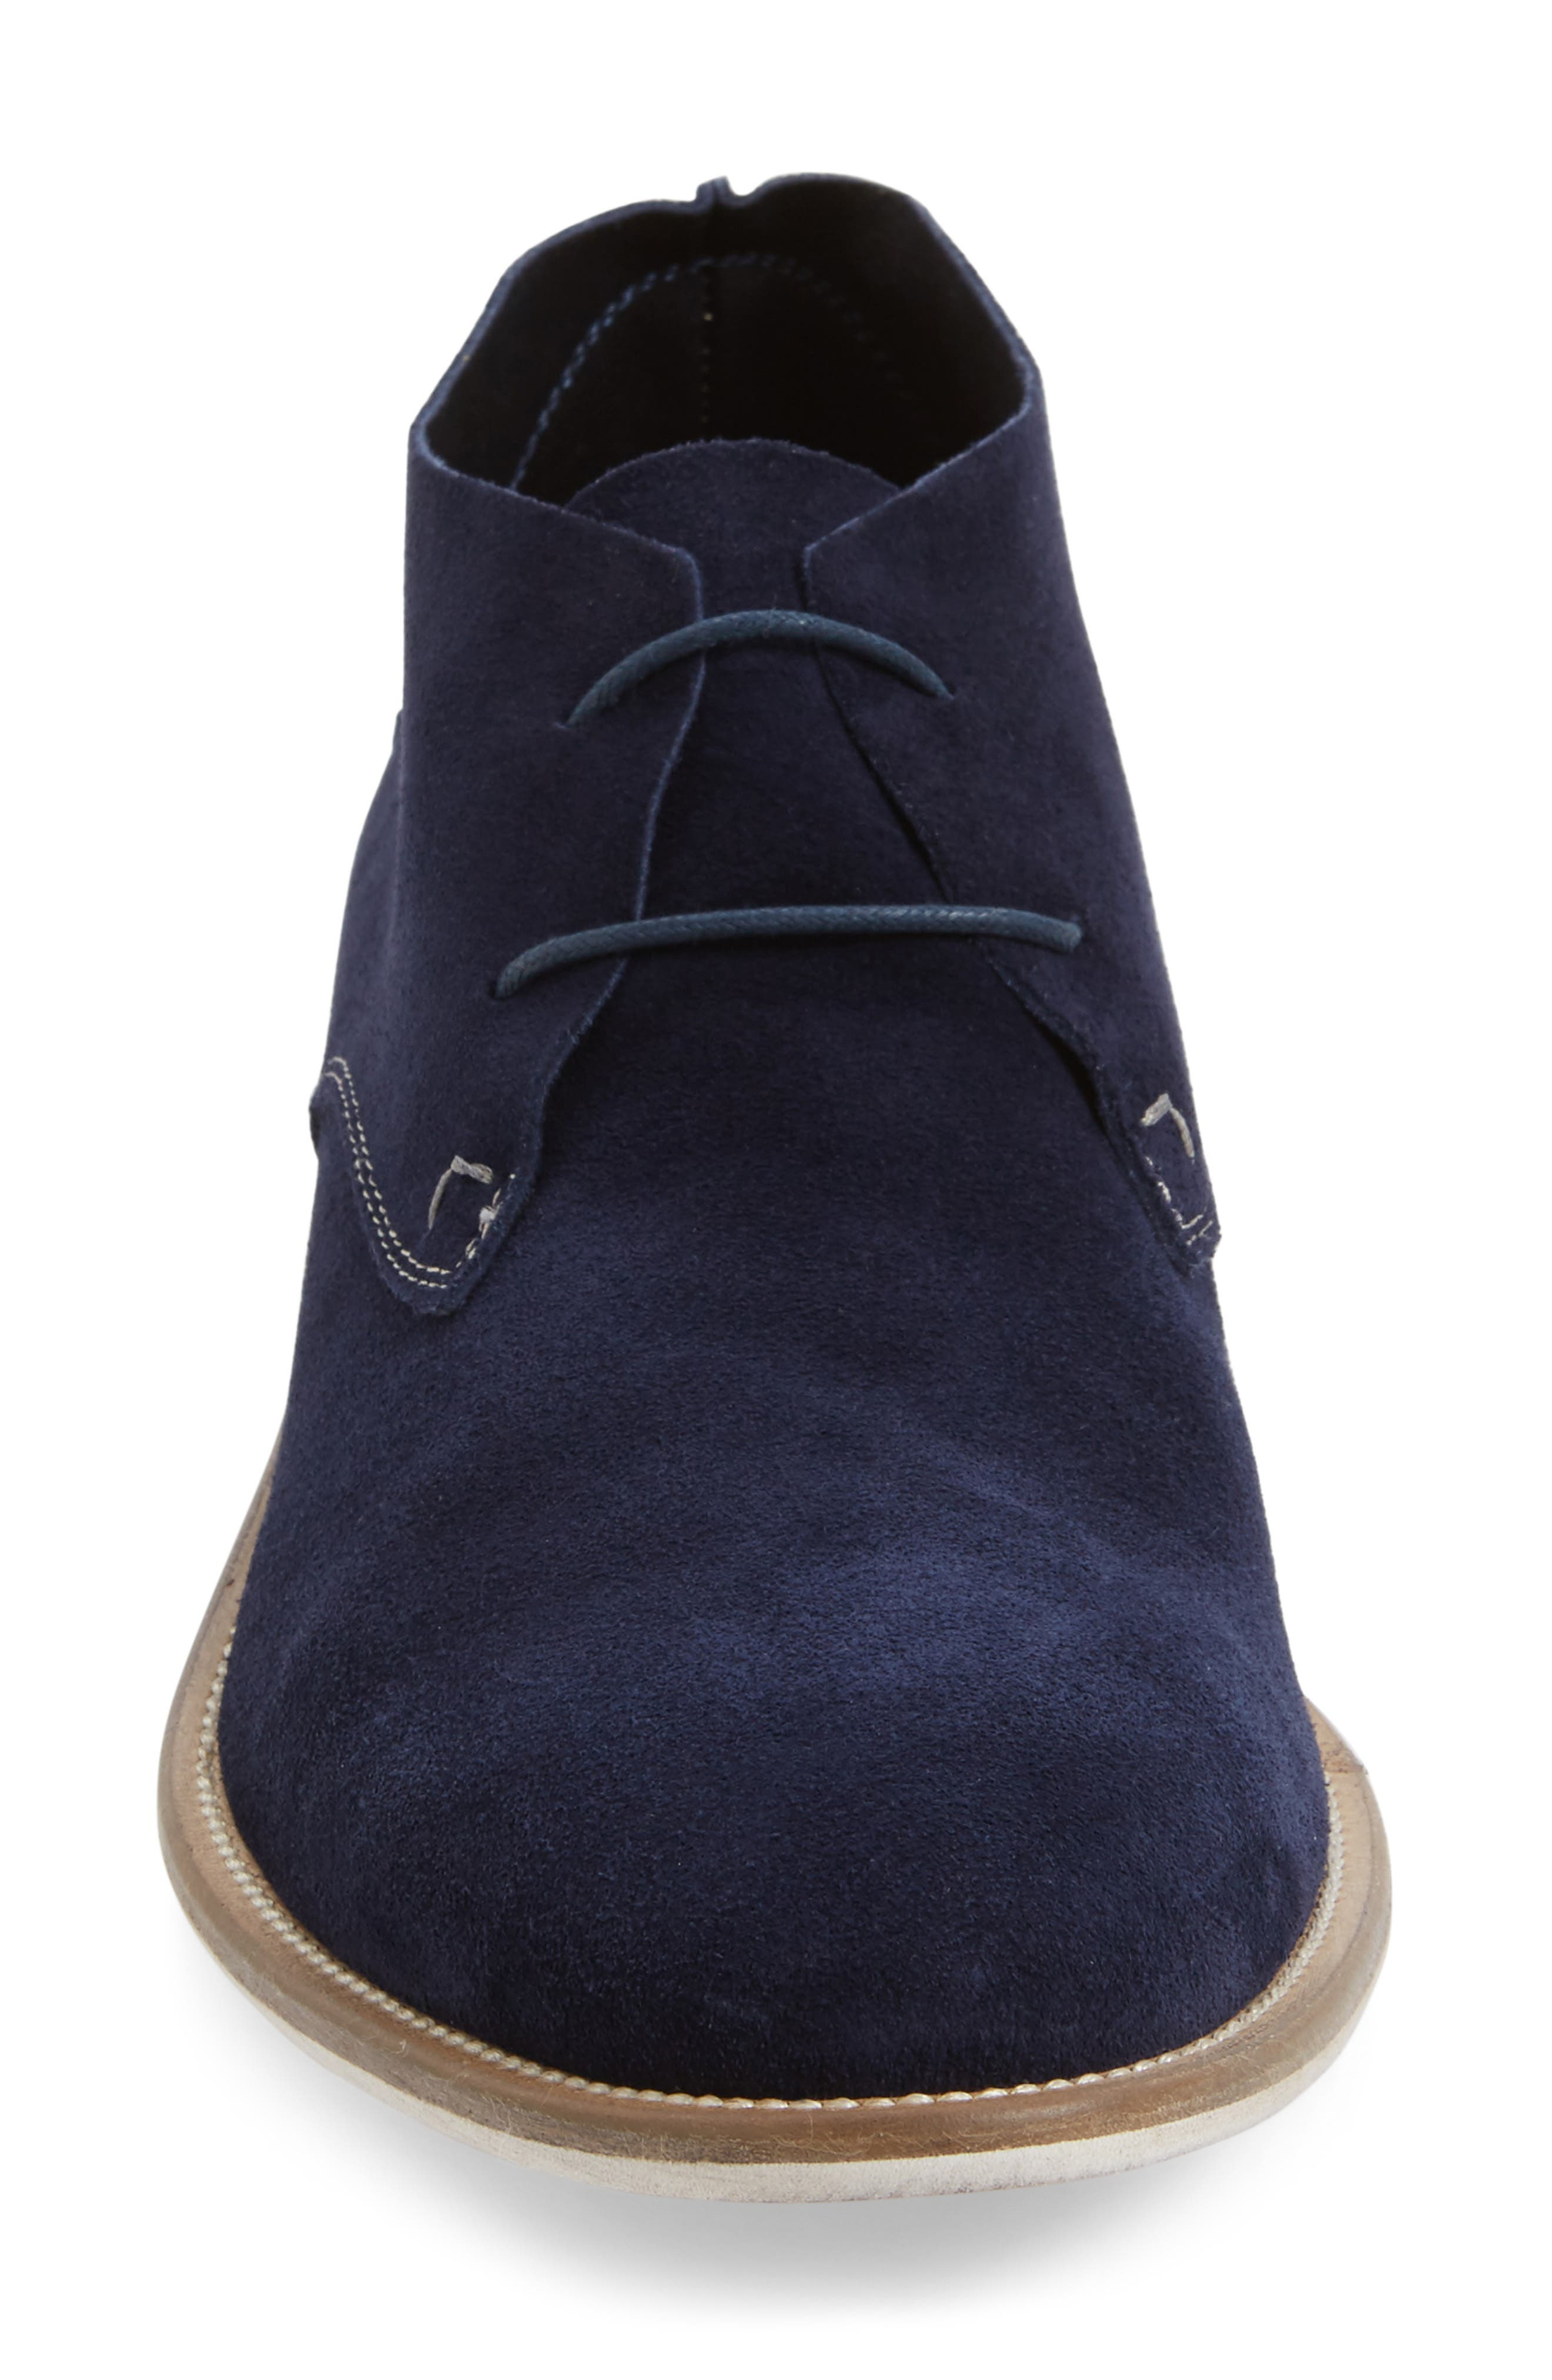 Take Comfort Chukka Boot,                             Alternate thumbnail 3, color,                             Midnight Navy Suede